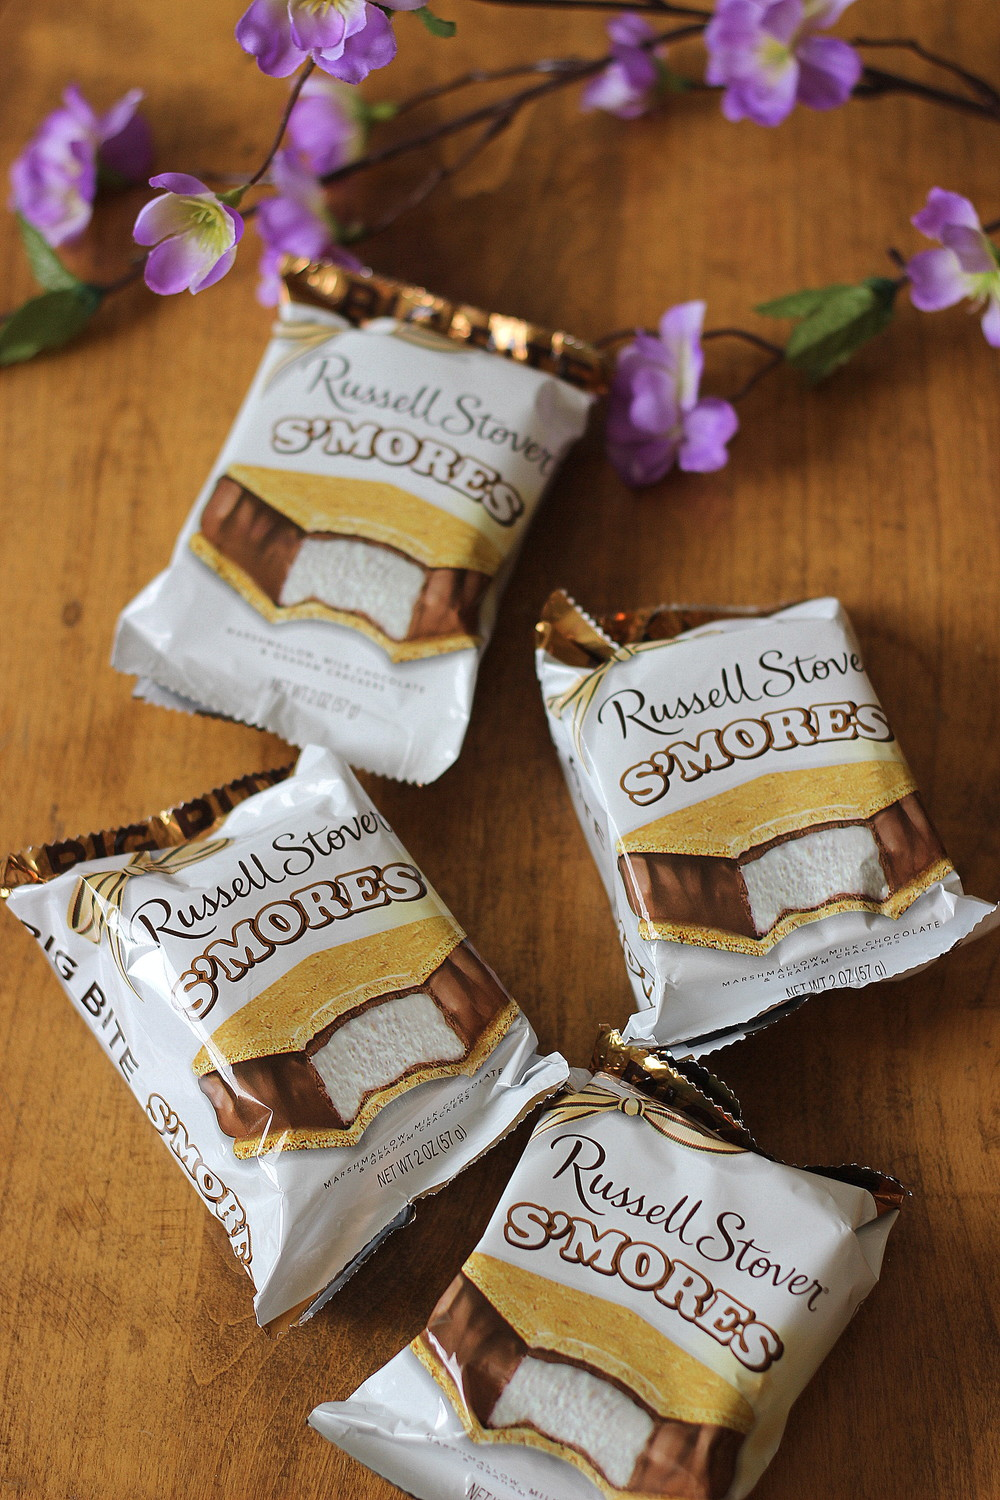 Russell Stover S'mores | Kaleidoscopes & Polka Dots